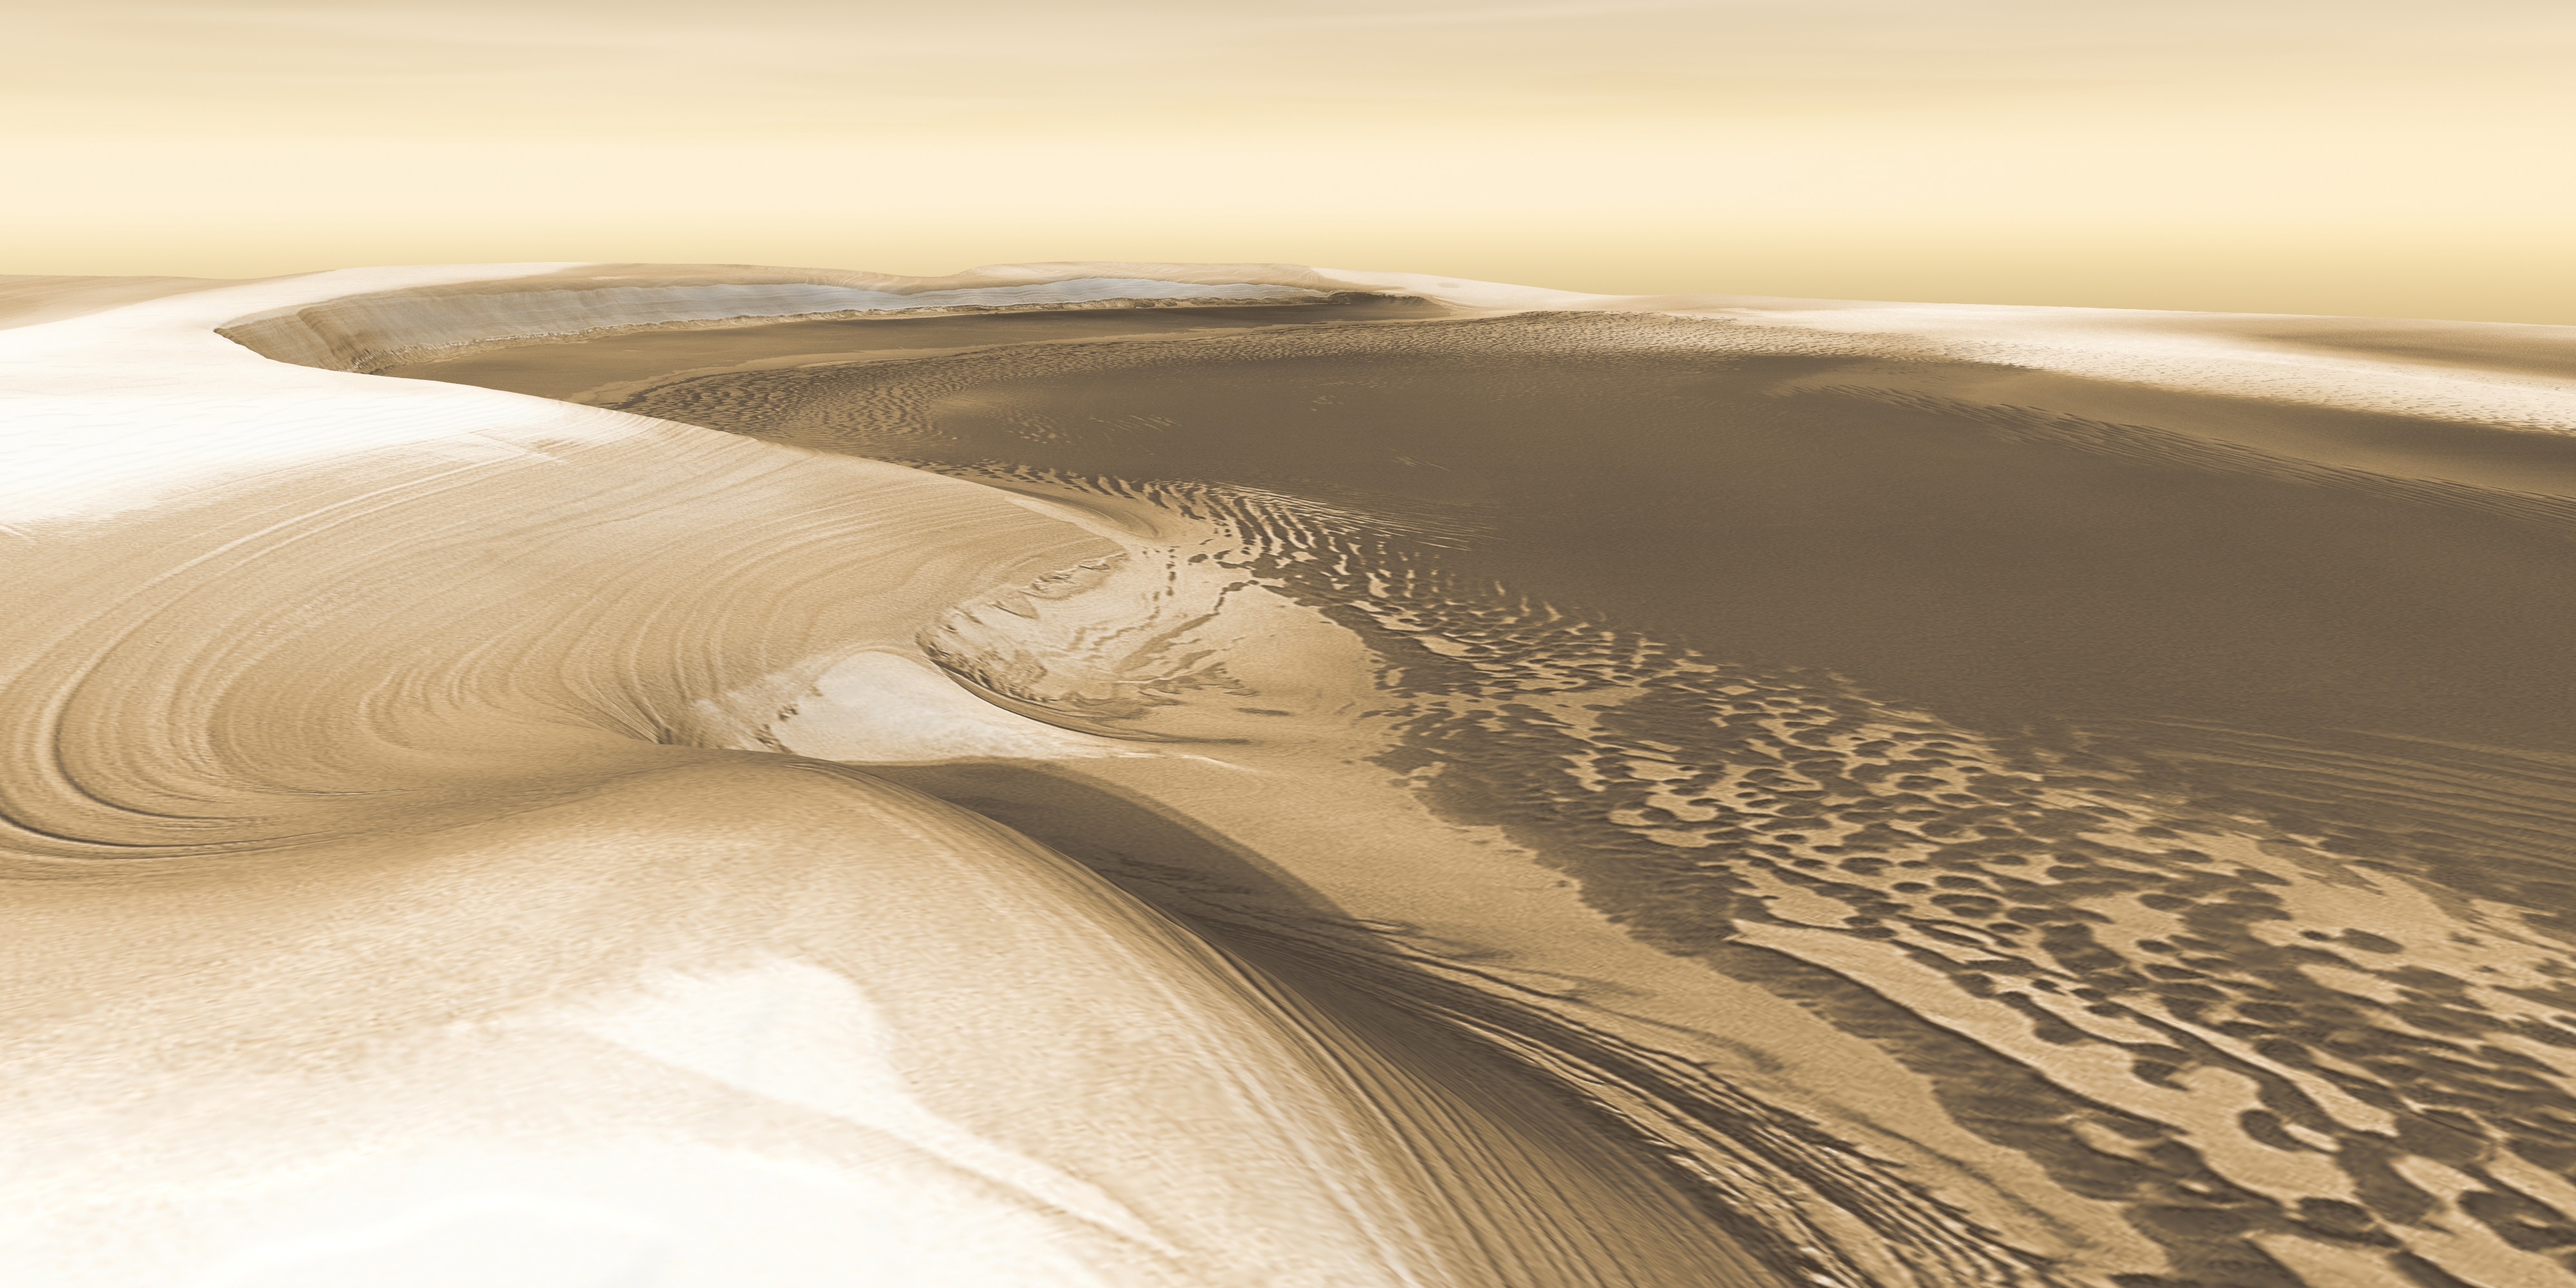 Standing at Mars' North Pole